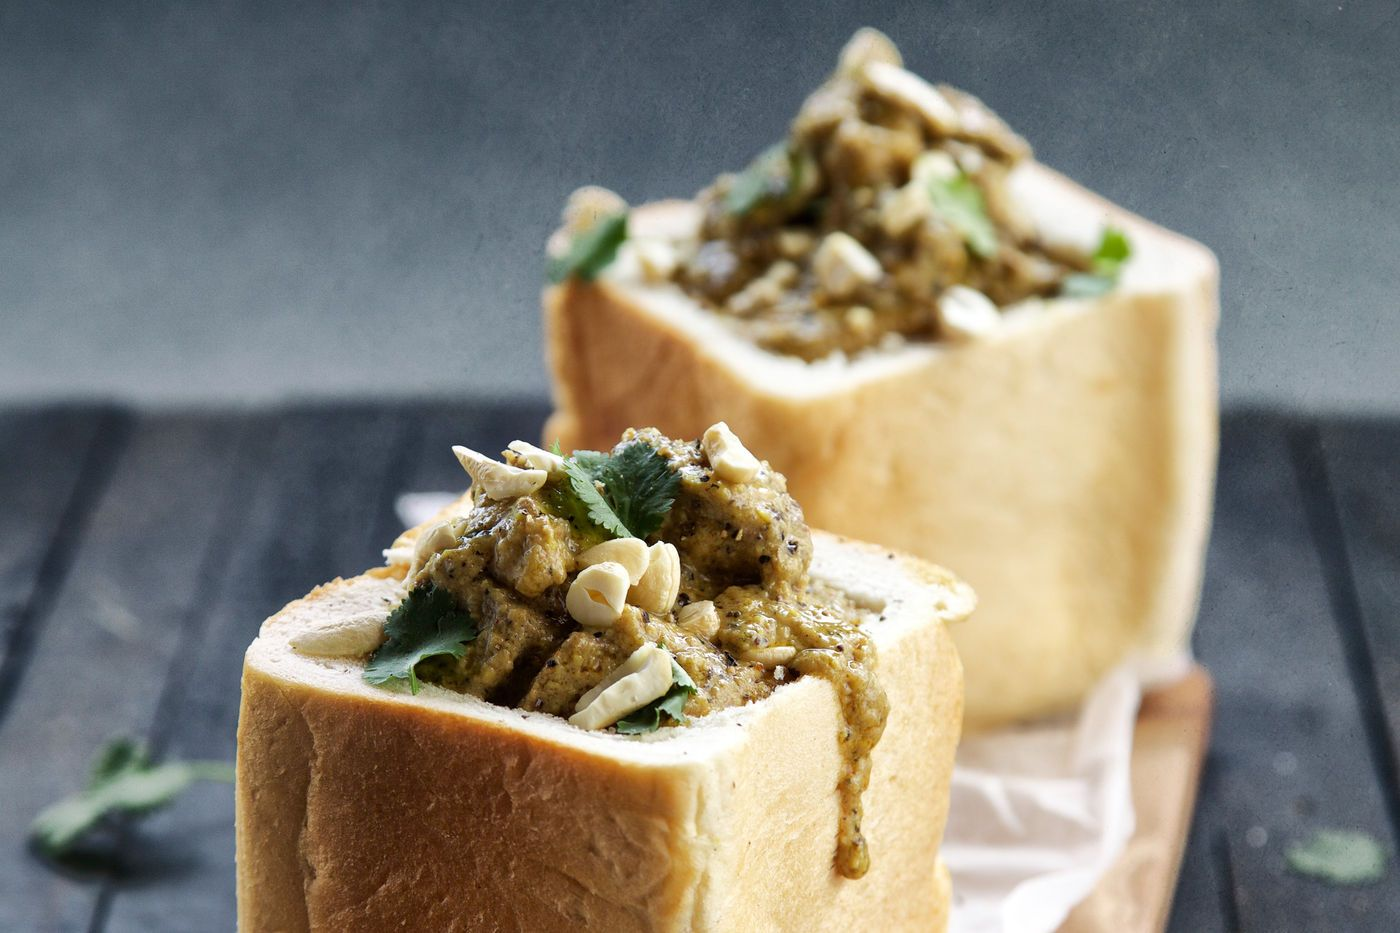 Beef Korma Bunny Chow - Make delicious beef recipes easy, for any occasion